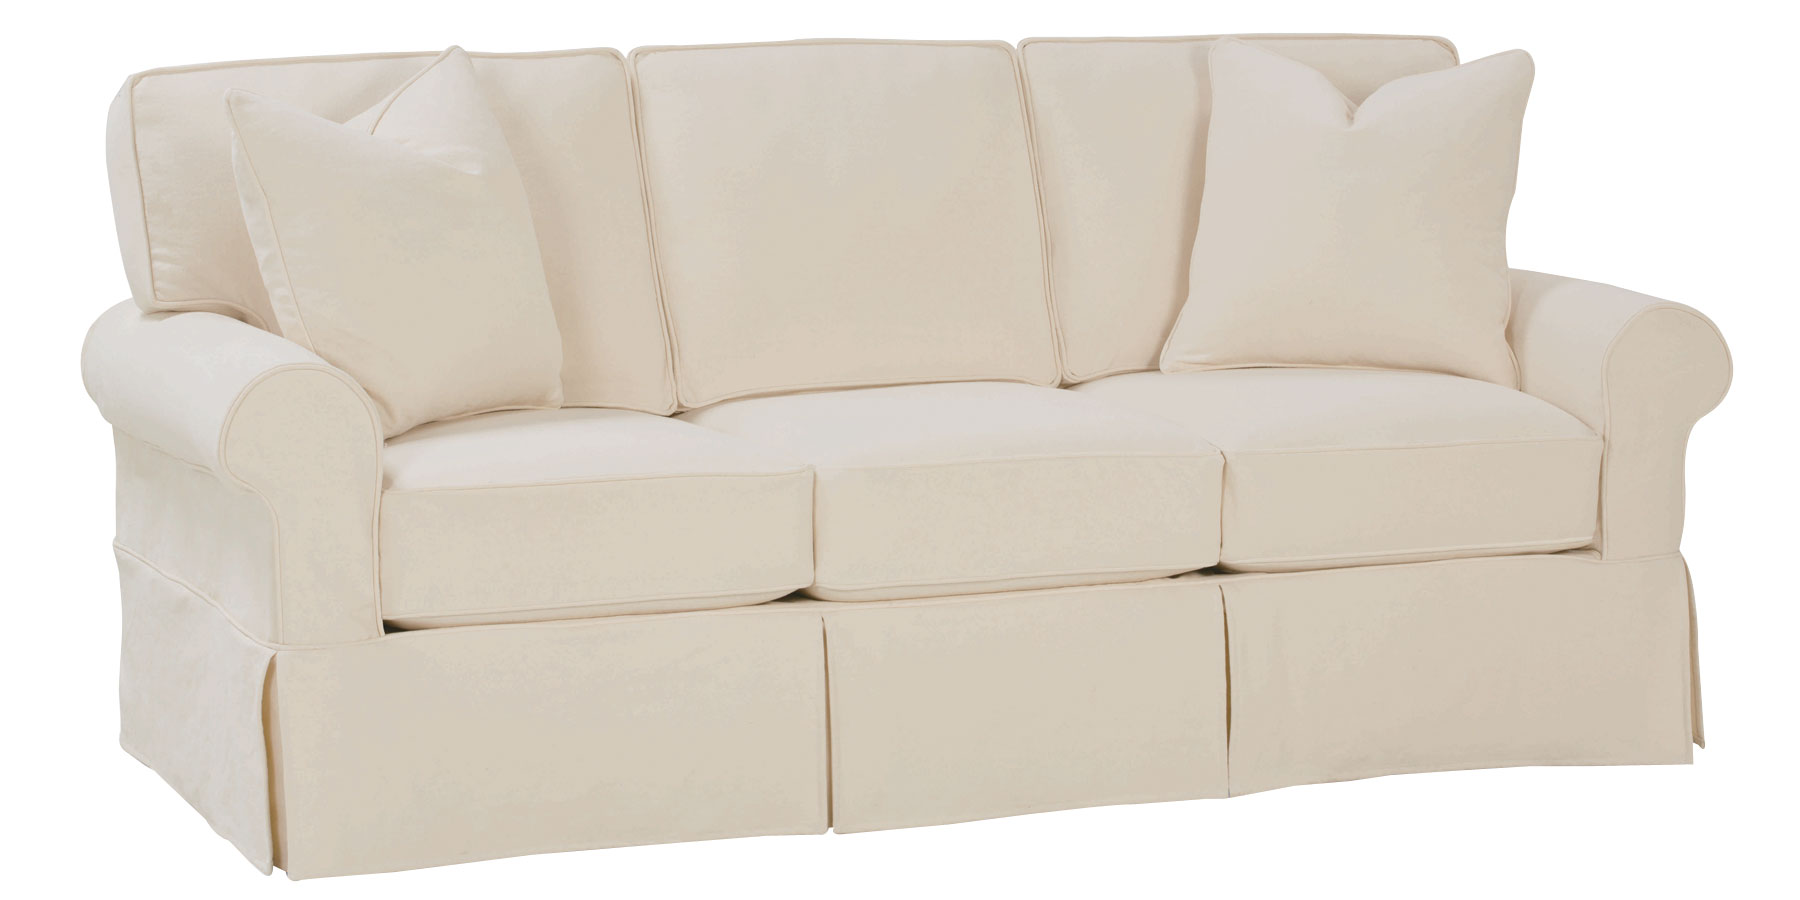 Christine Quot Quick Ship Quot Slipcovered Sofa Collection